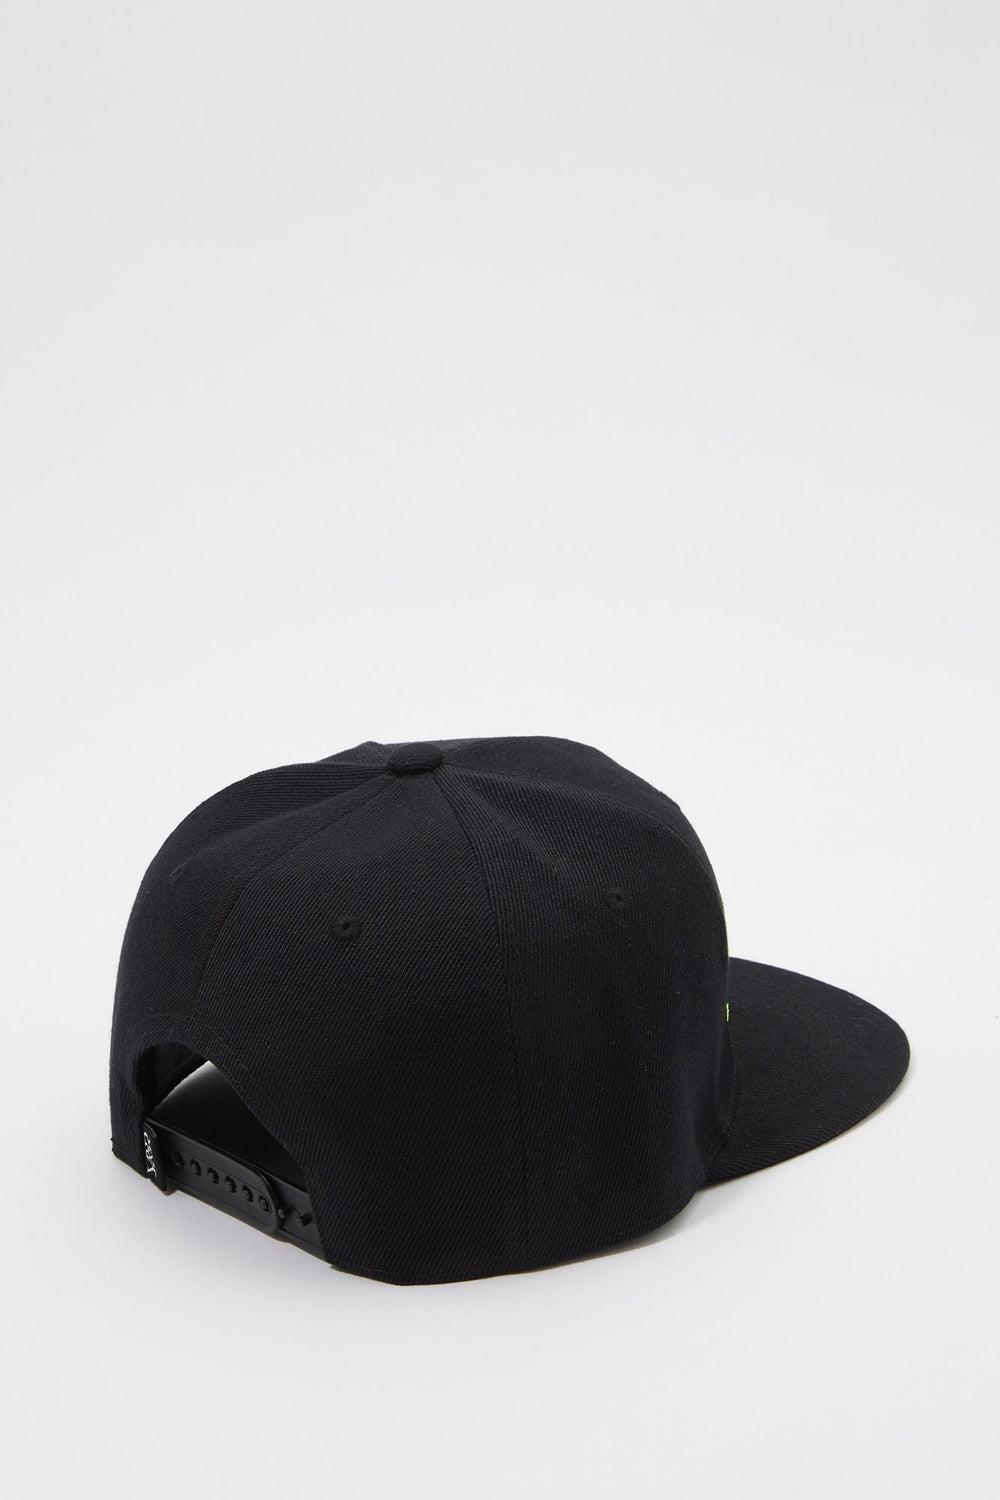 Young & Reckless Mens Neon Hat Black